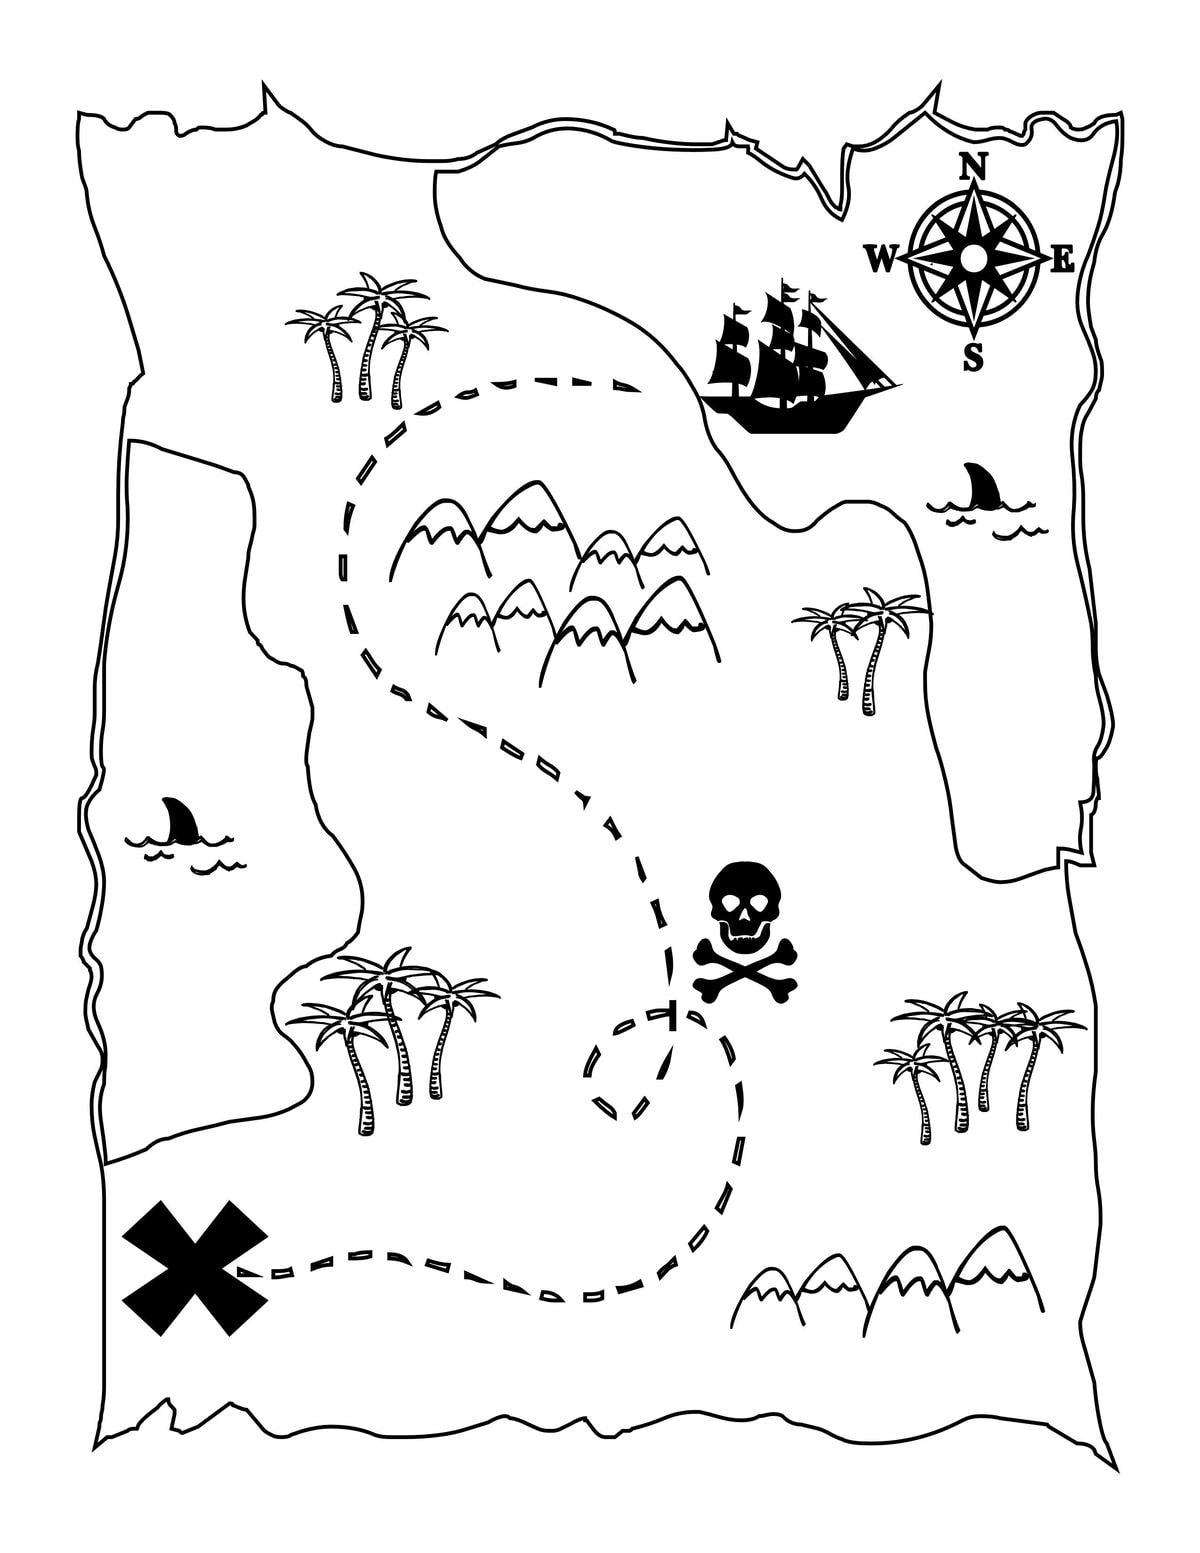 Astounding image in free printable treasure map